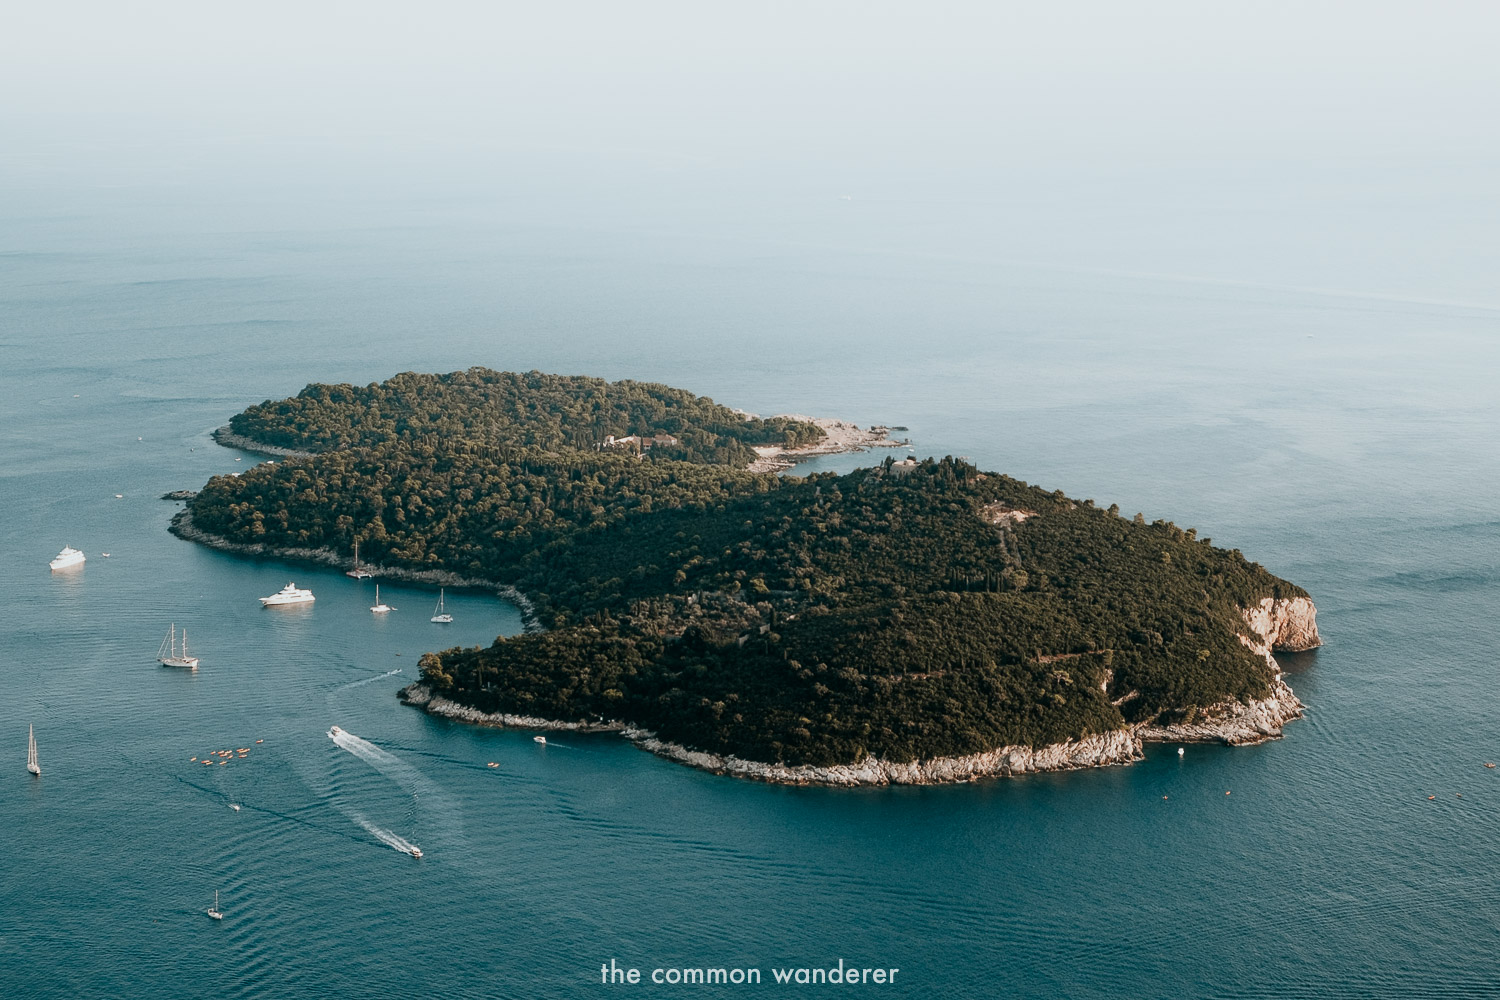 Visiting Lokrum Islands is one of the best things to do in Dubrovnik